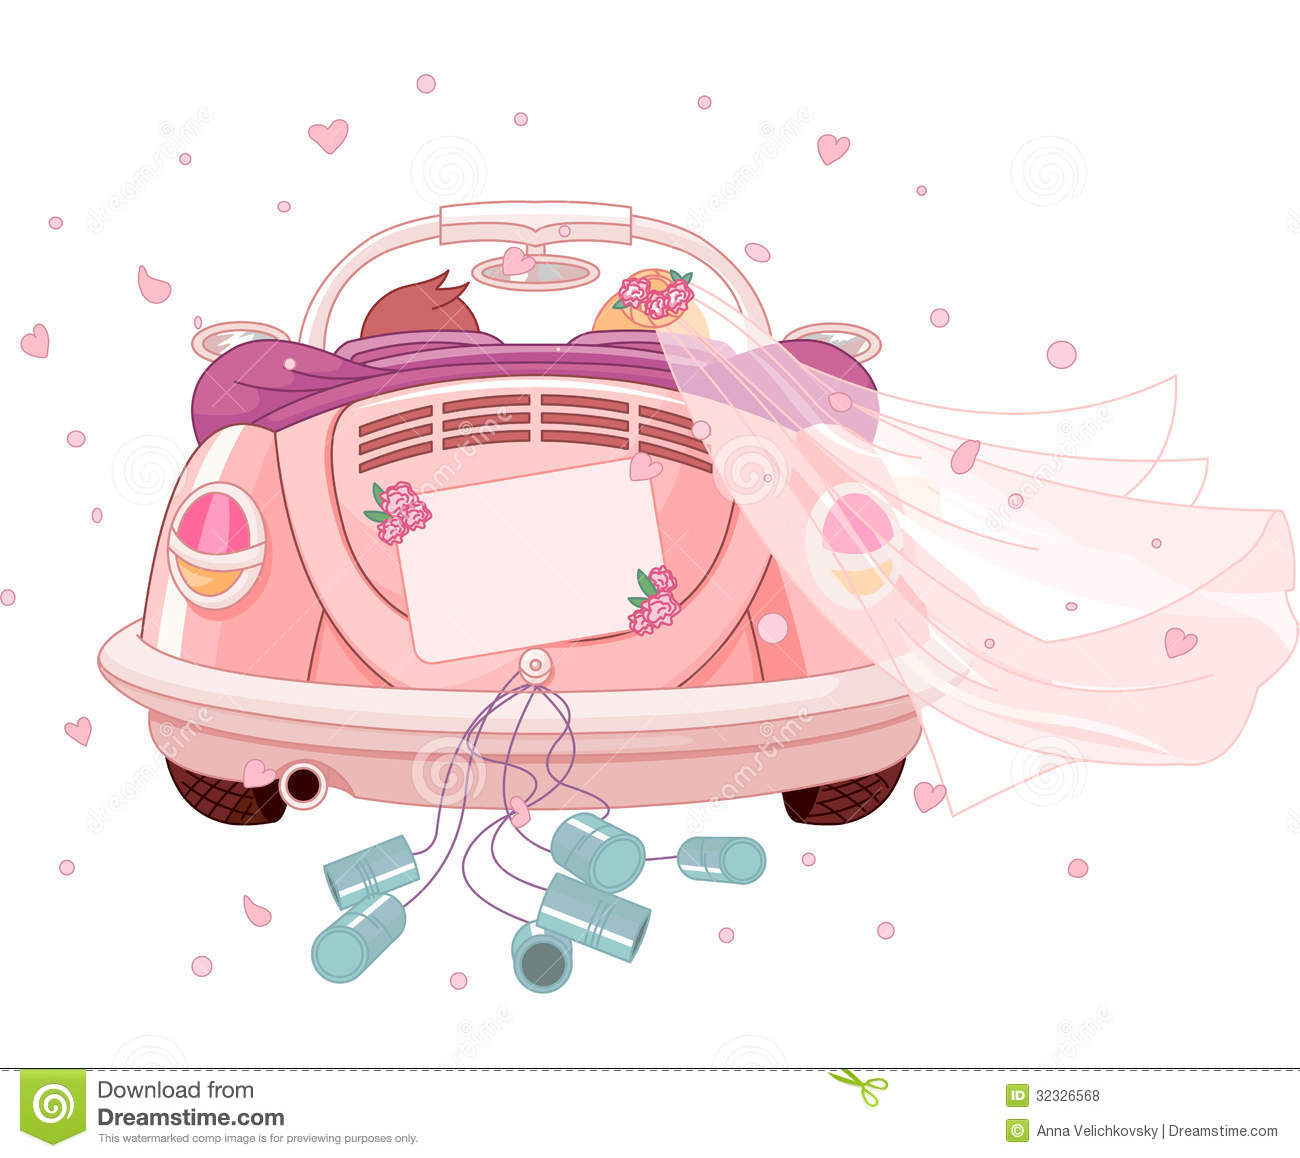 Just married vector free download joy studio design Married to design